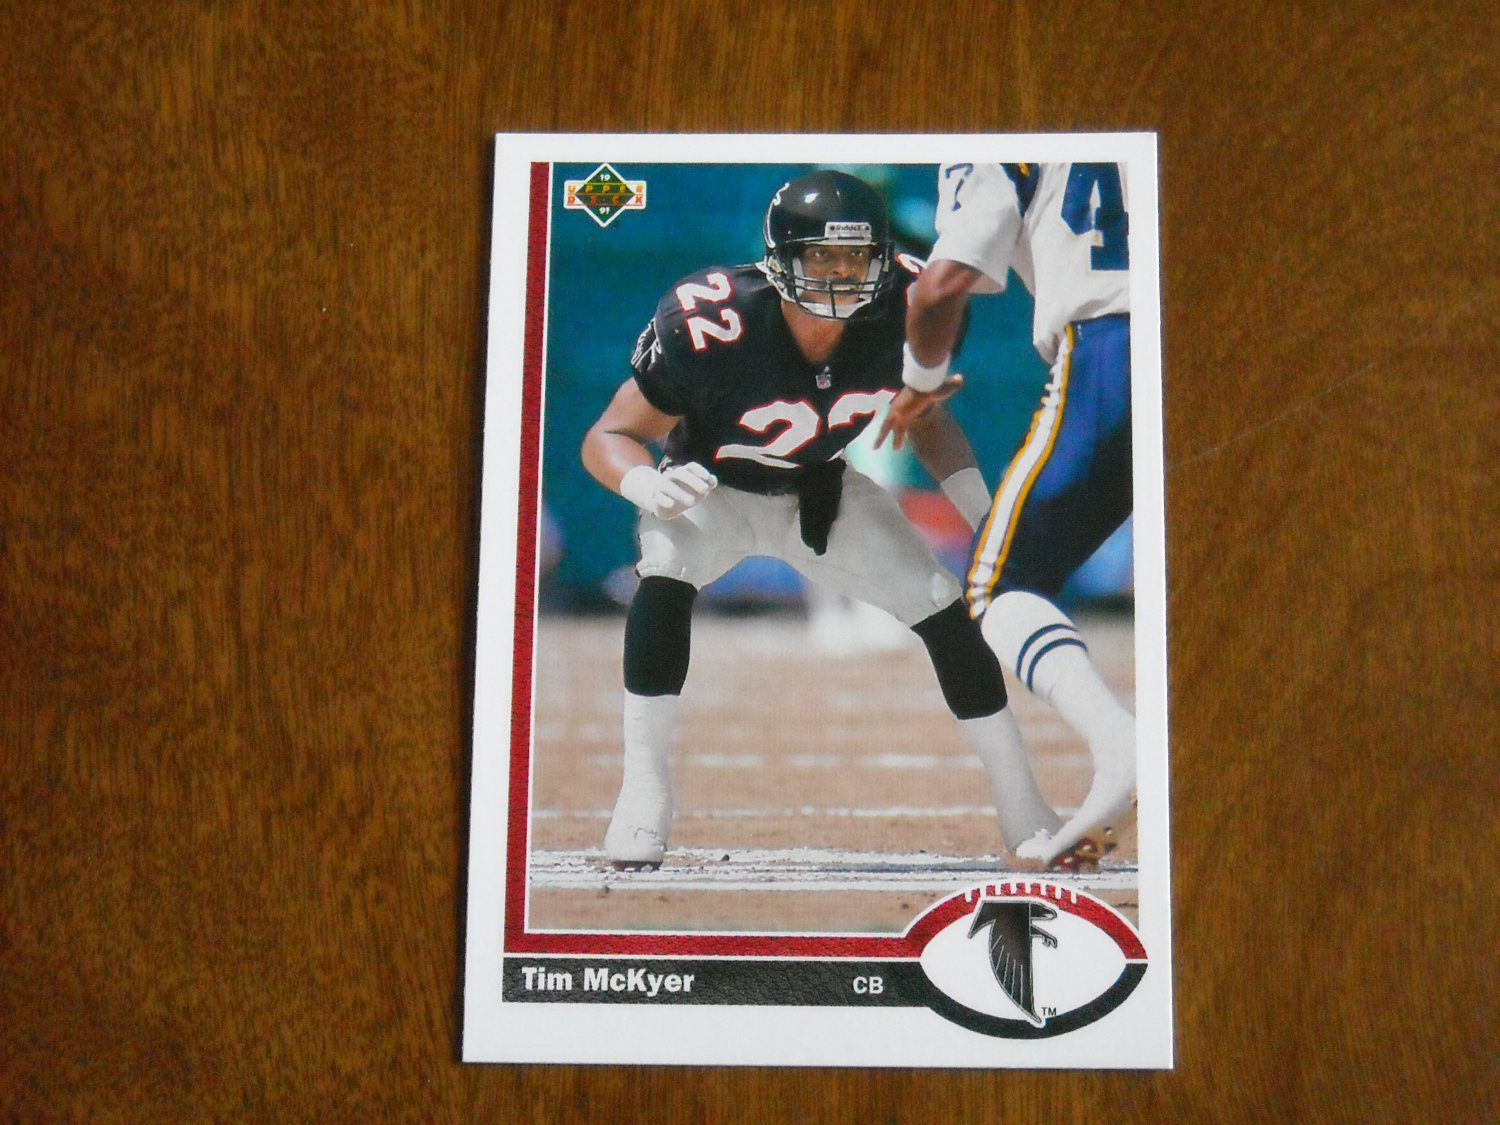 Tim McKyer Atlanta Falcons Cornerback Card No. 580 - 1991 Upper Deck Football Card